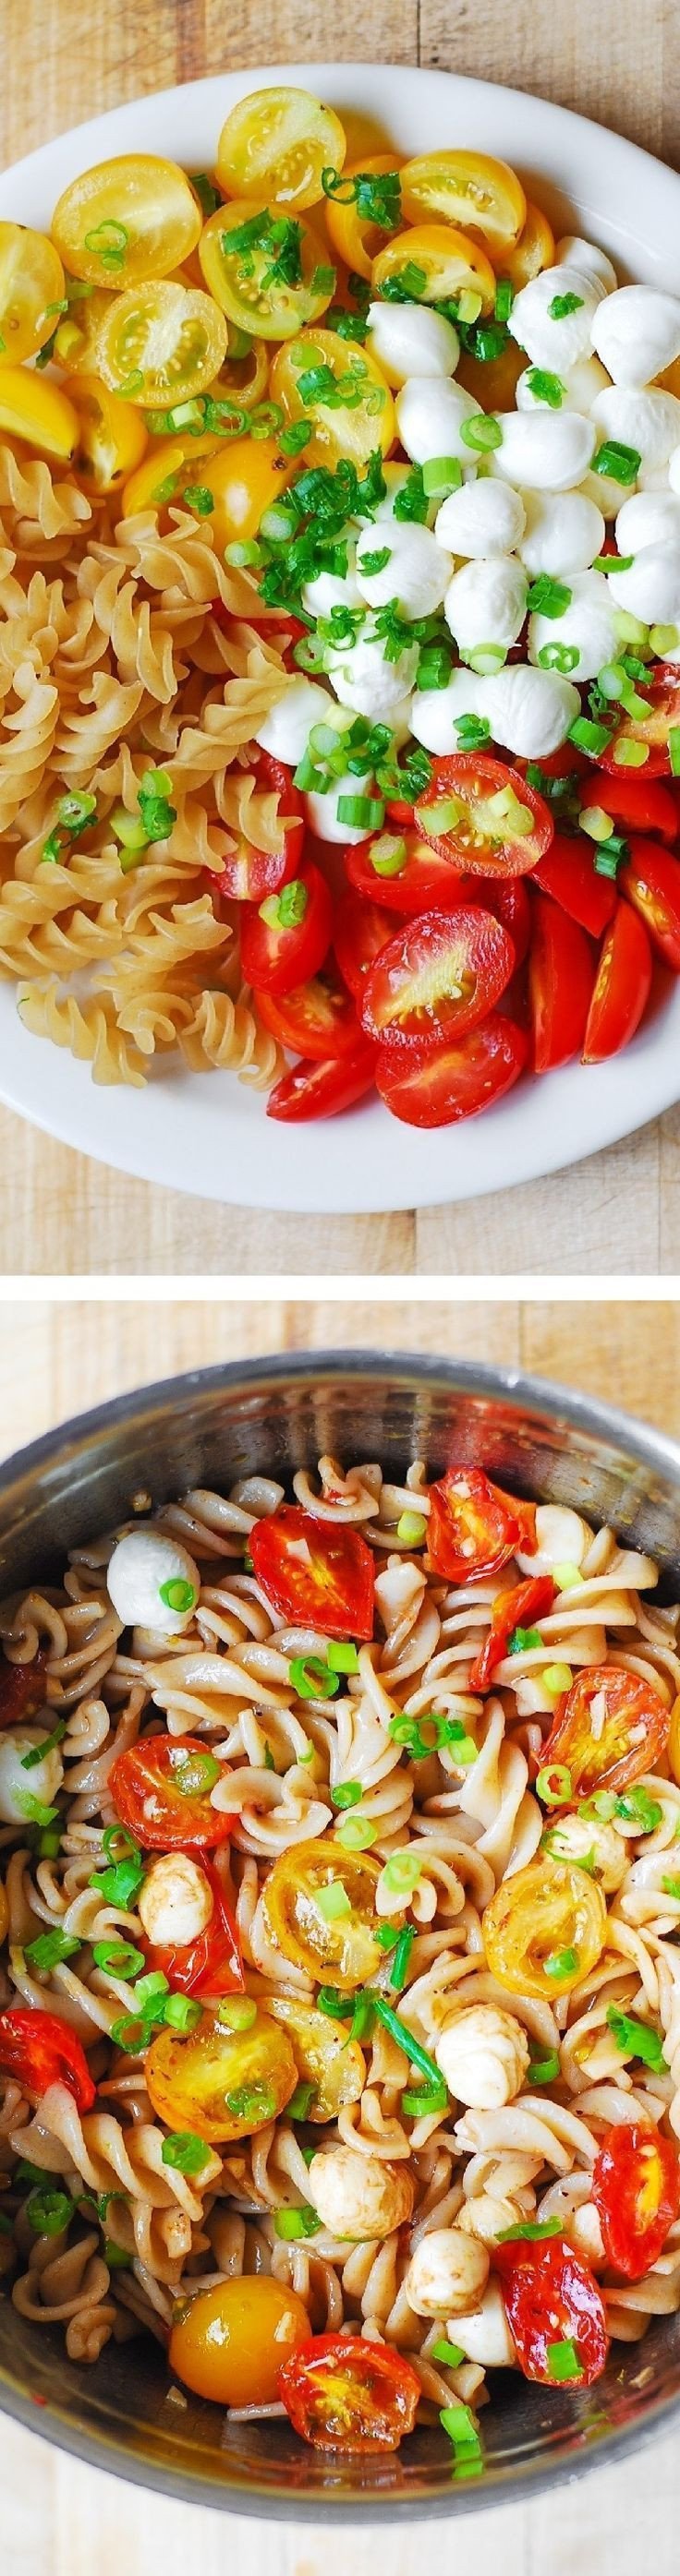 Healthy Picnic Side Dishes  Pasta Salad with Roasted Tomatoes and Mozzarella